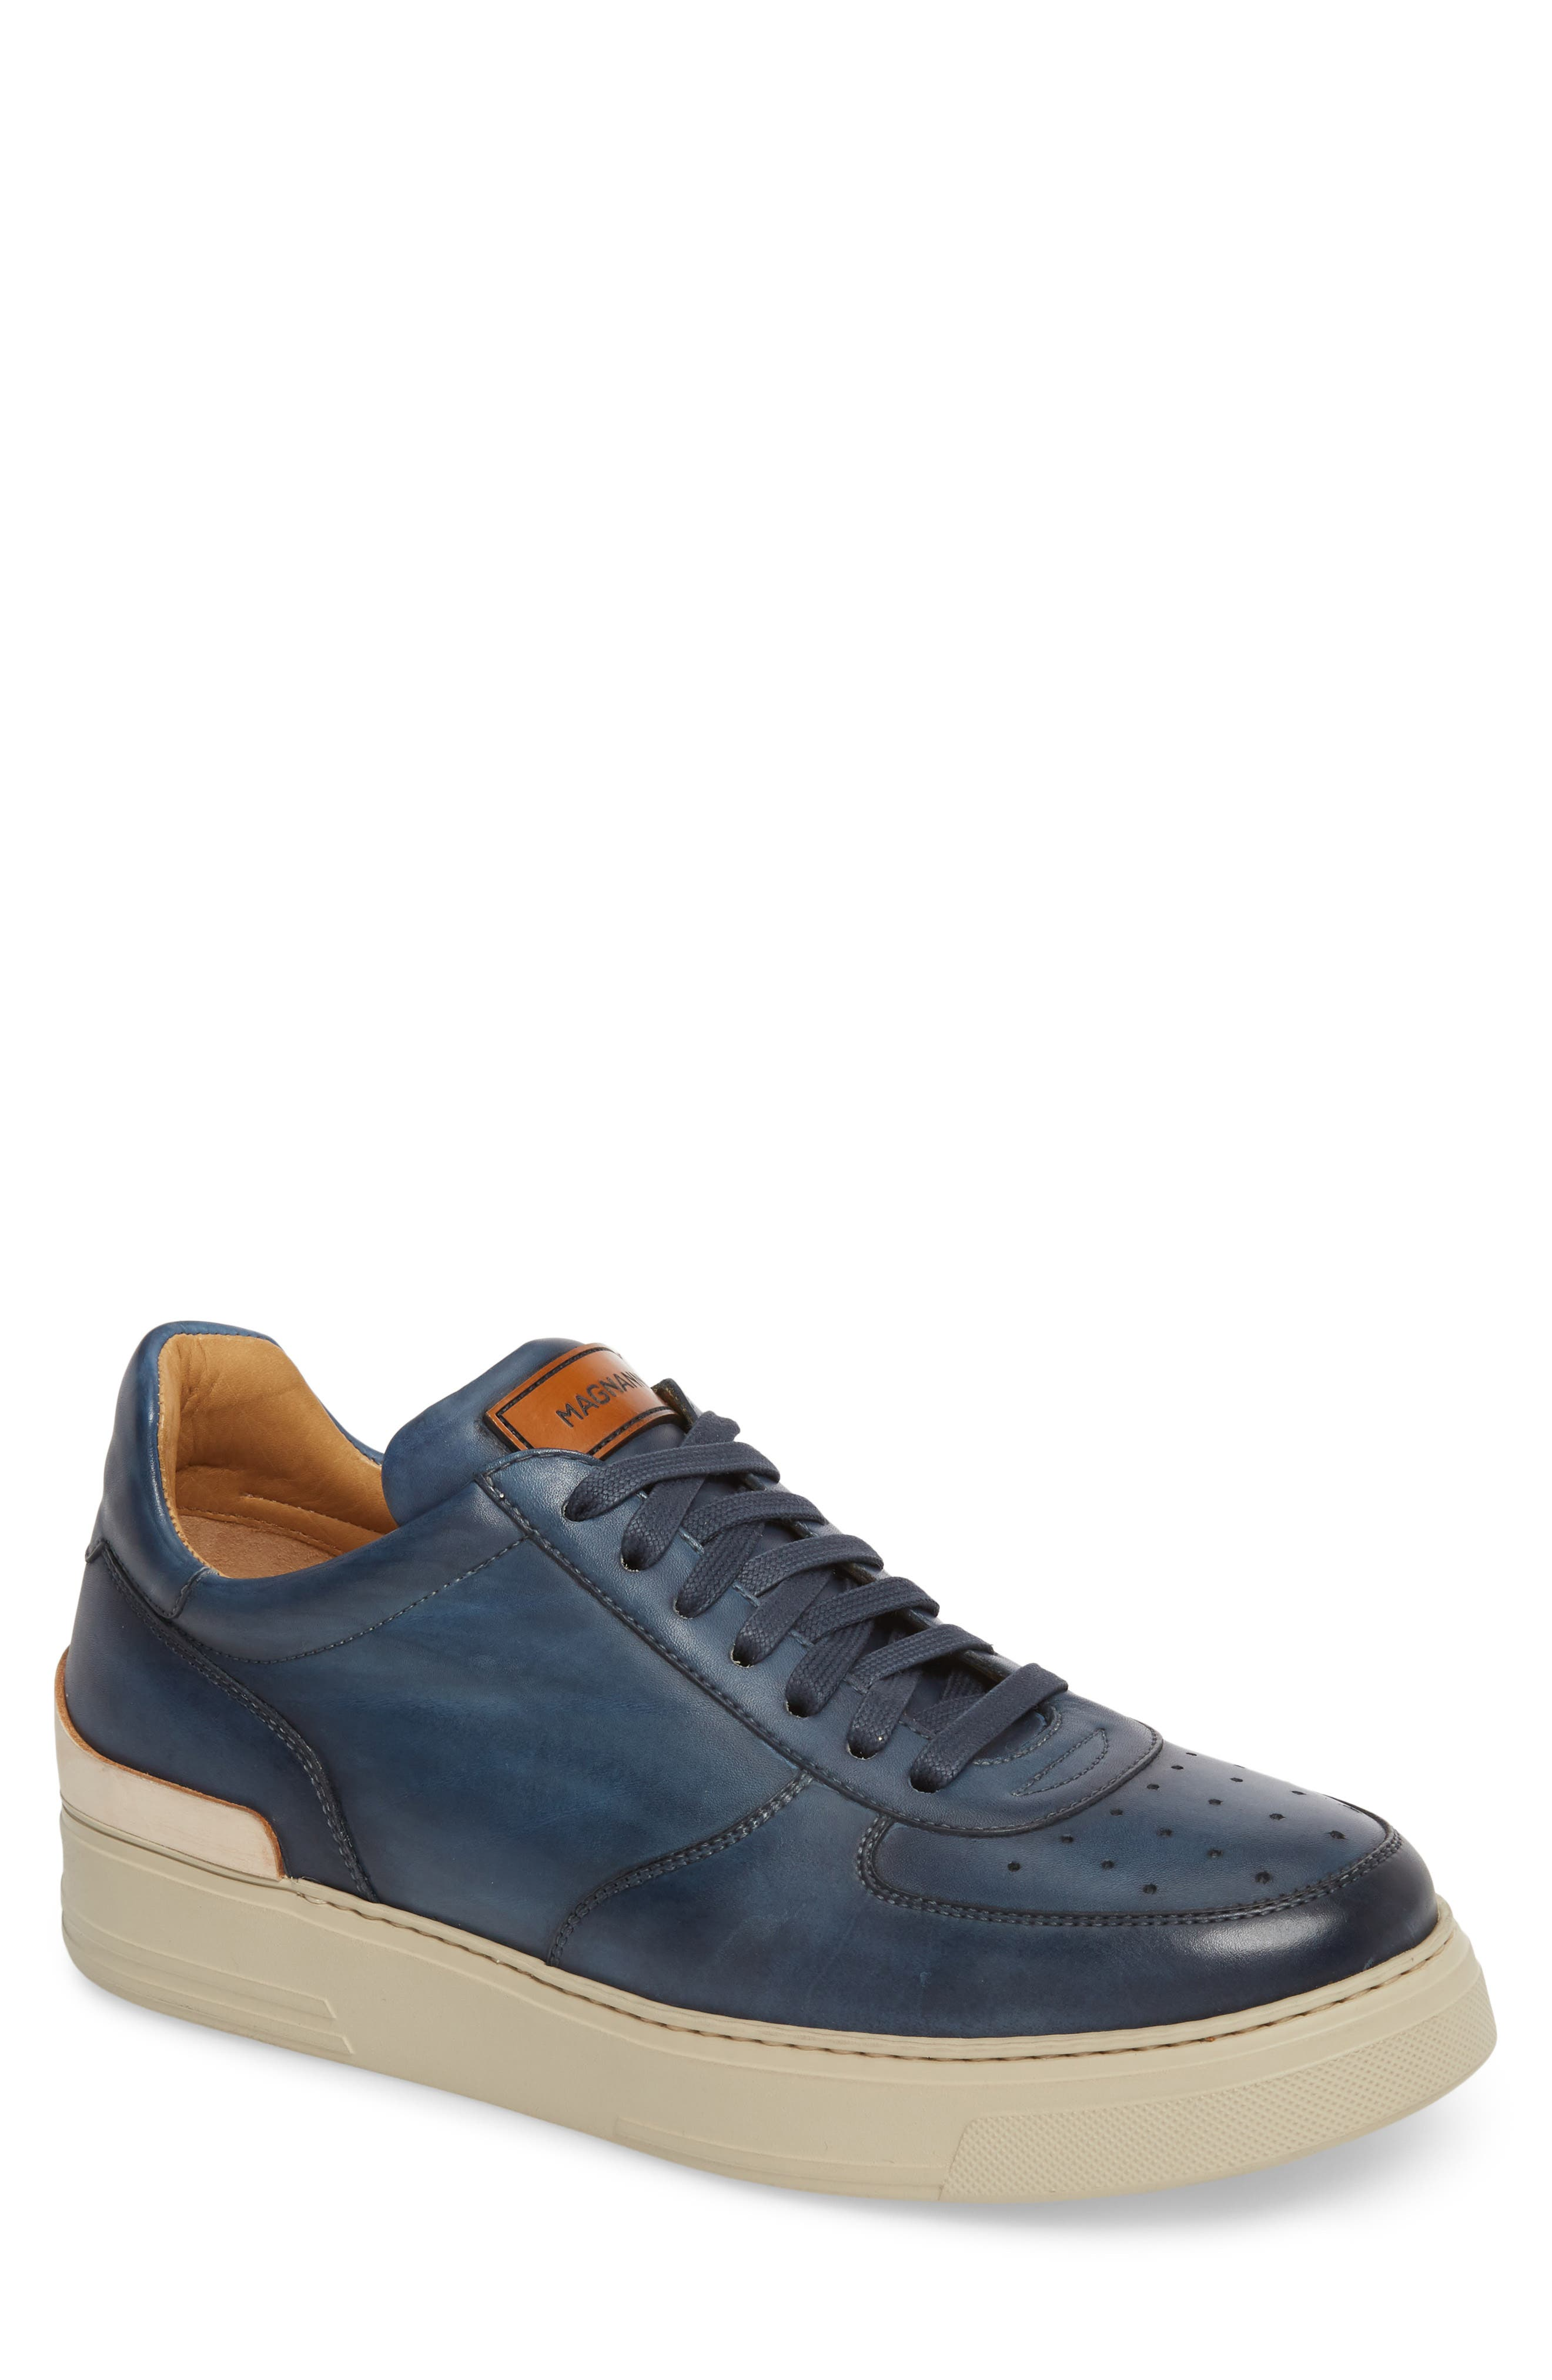 Magnanni Men's Vada Lo Lace Up Sneaker NWFCU0DR